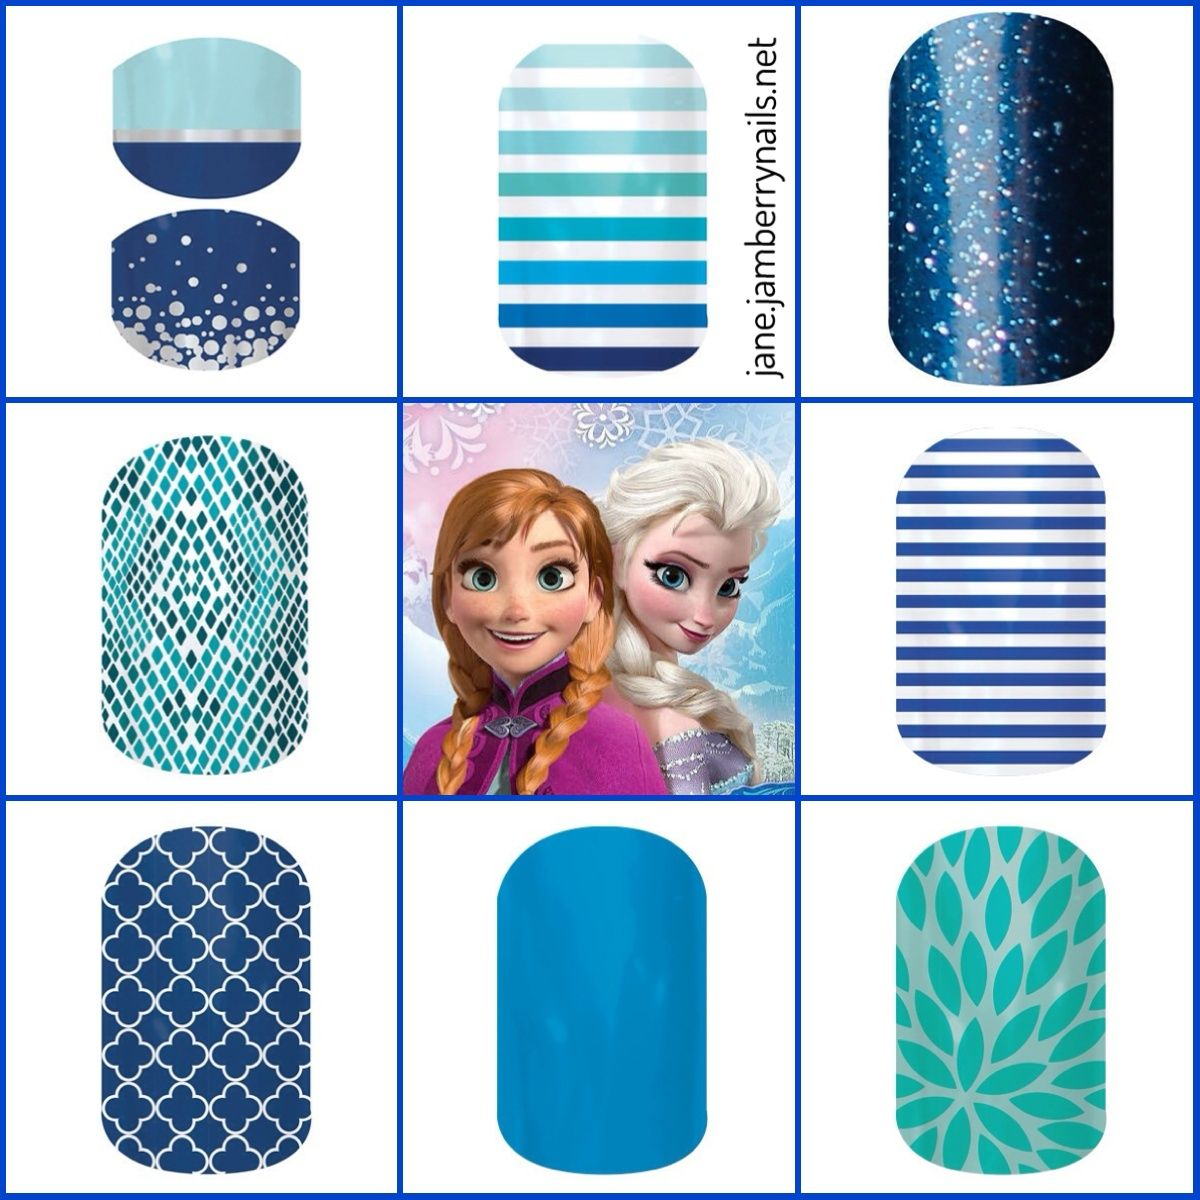 "Frozen inspired Jamberry nail wraps, perfect for Little Girl ""Frozen"" birthday party.  WWW.LOWERY.JAMBERRYNAILS.NET"